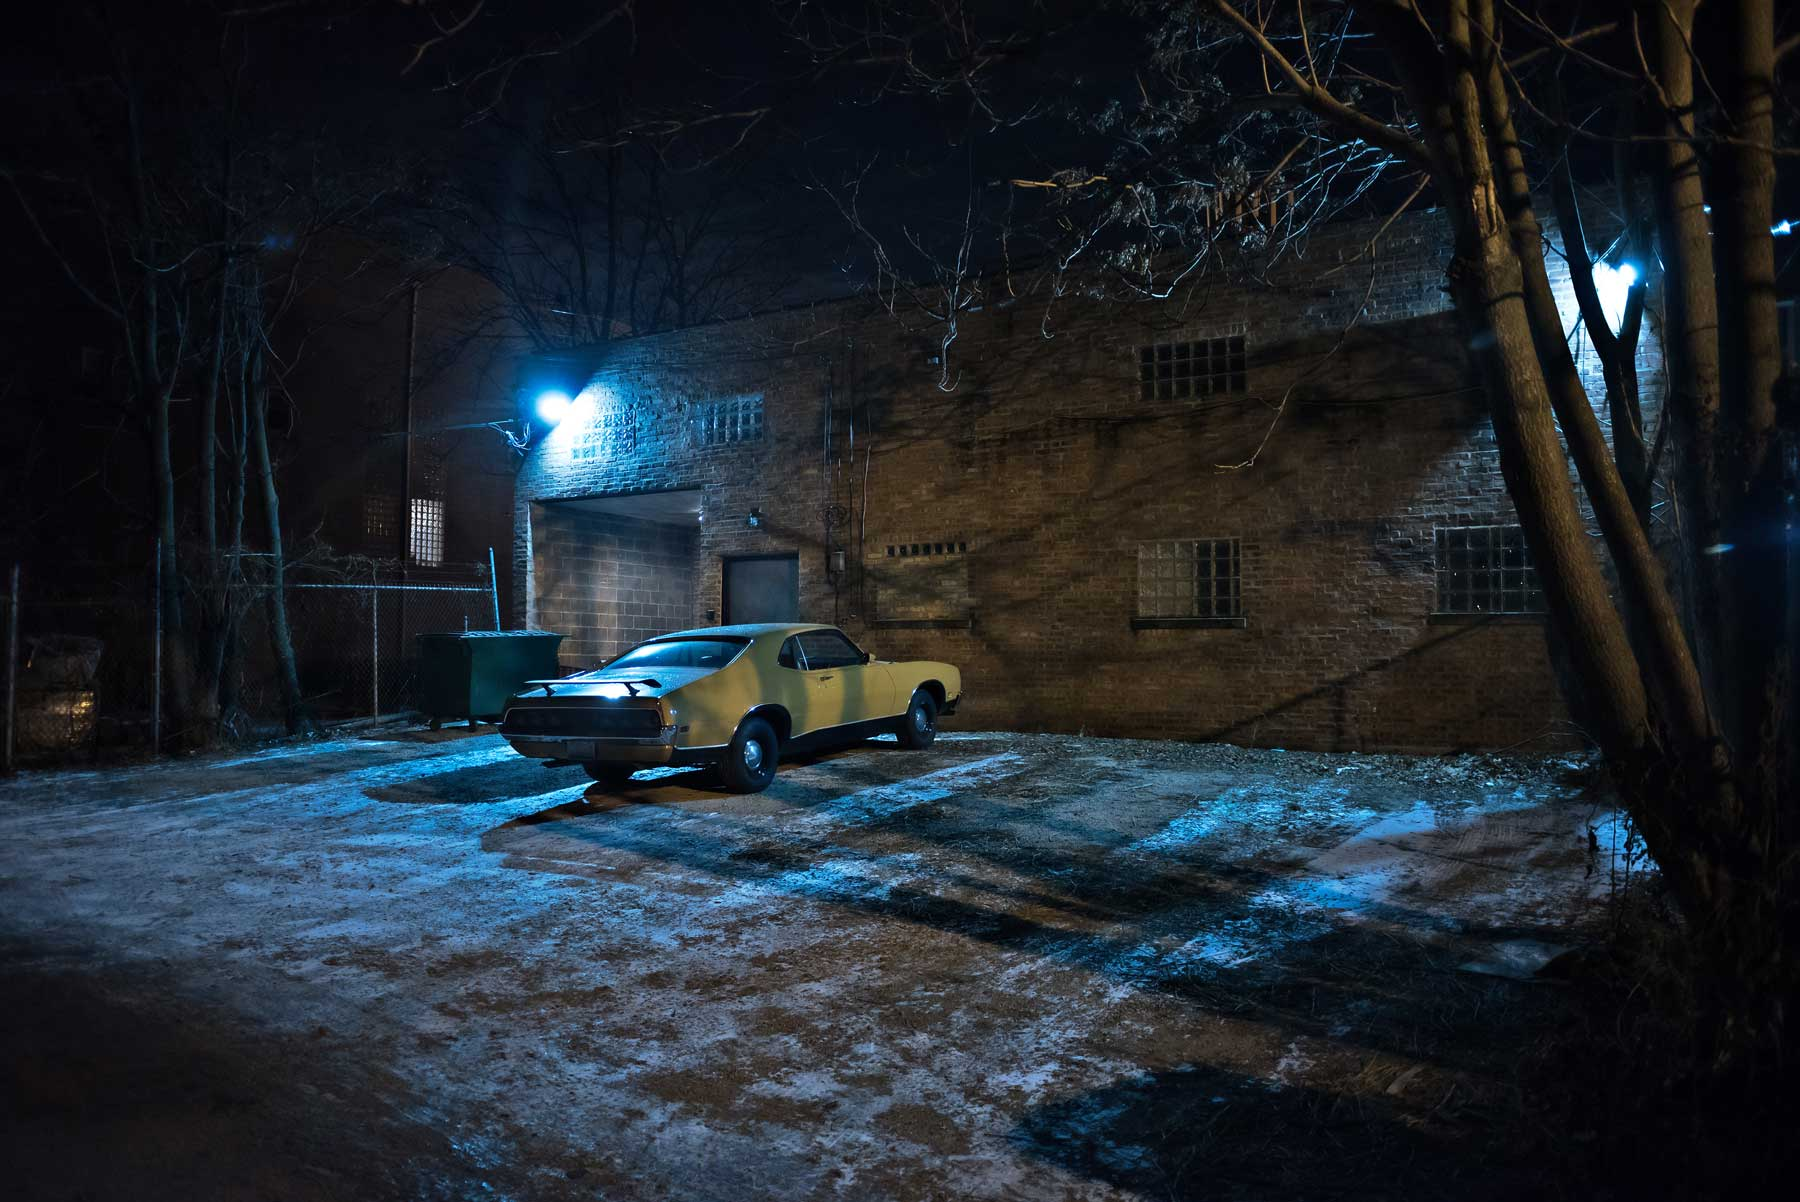 car in dark alley